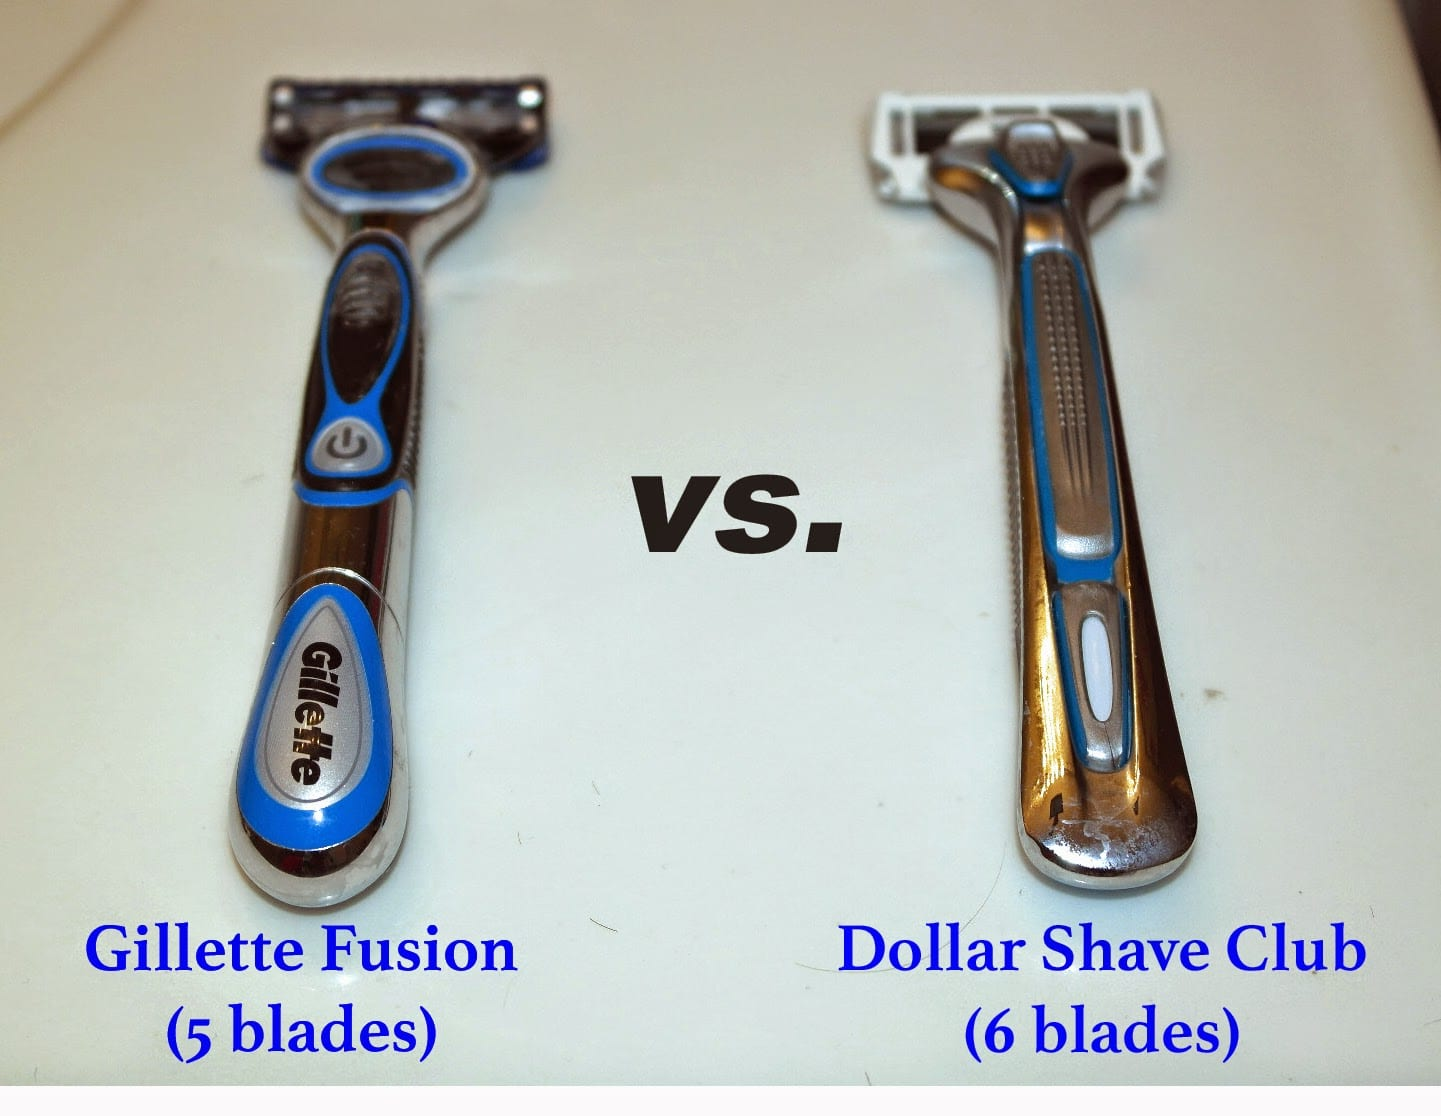 harrys and dollar shave club upended the shaving industry - HD1441×1116